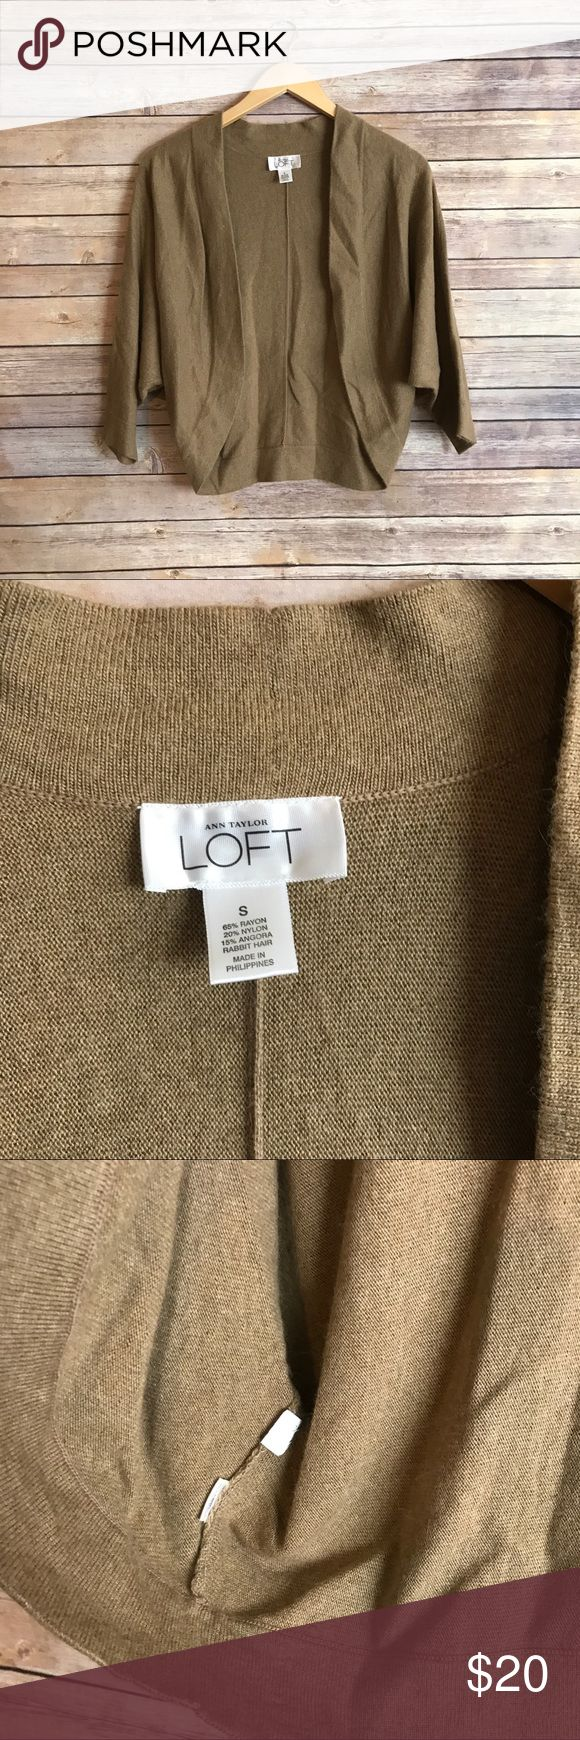 LOFT batwing cardigan Size small. In excellent condition! Super soft! Great to wear over a blouse for work! ** no modeling or trades! LOFT Sweaters Cardigans